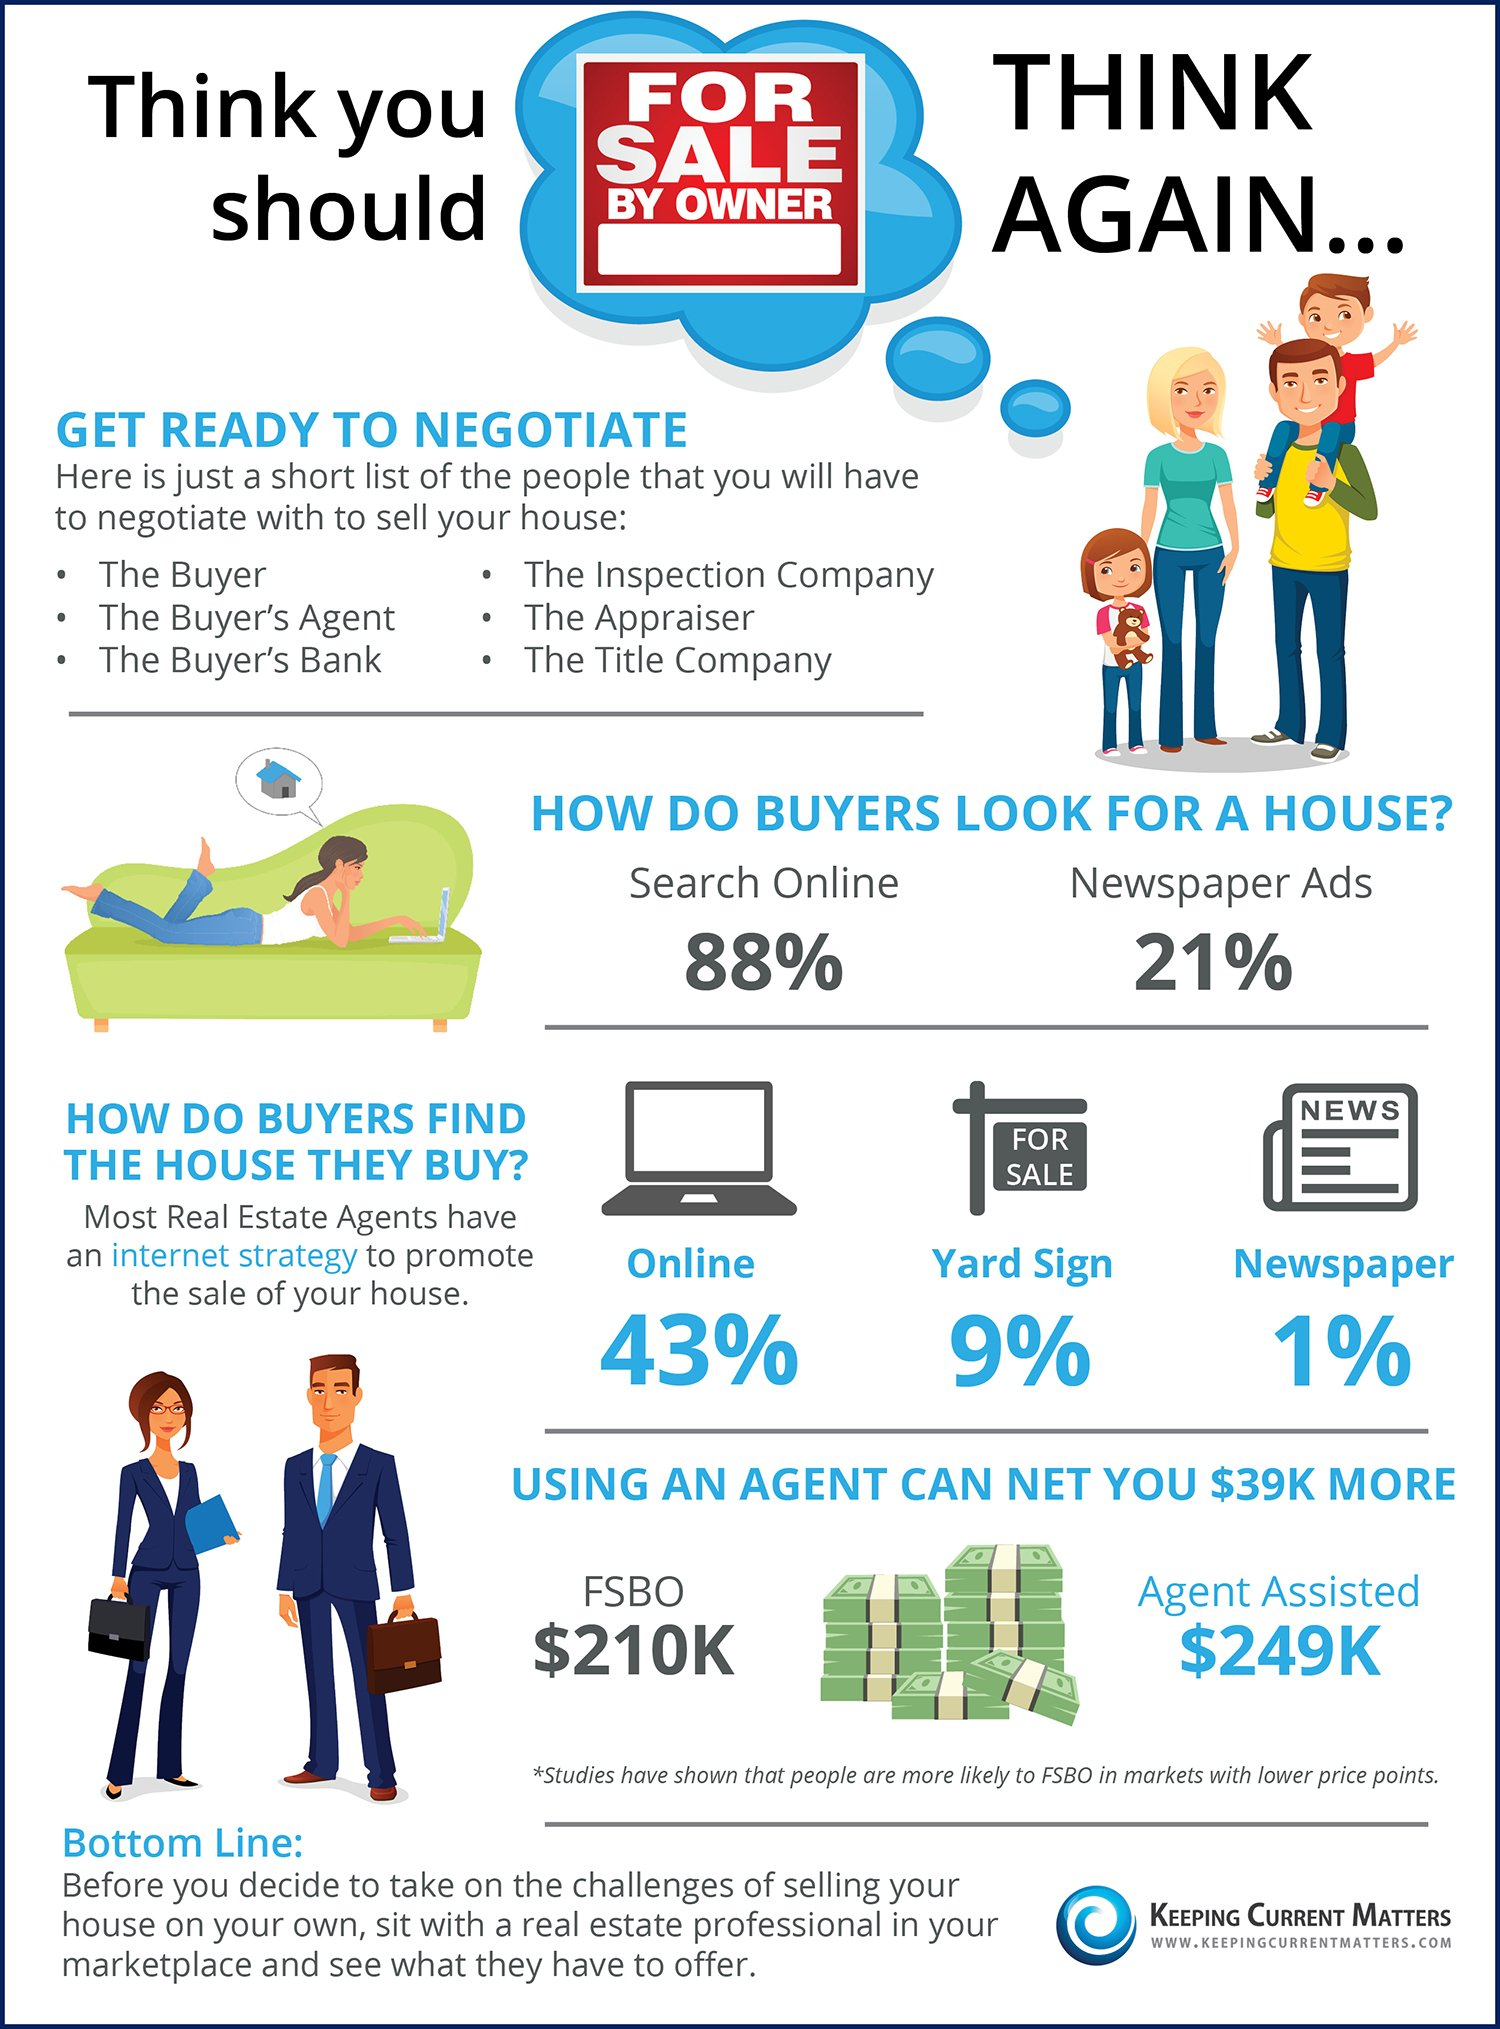 Thinking you should fsbo think again infographic for What can i make at home to sell online